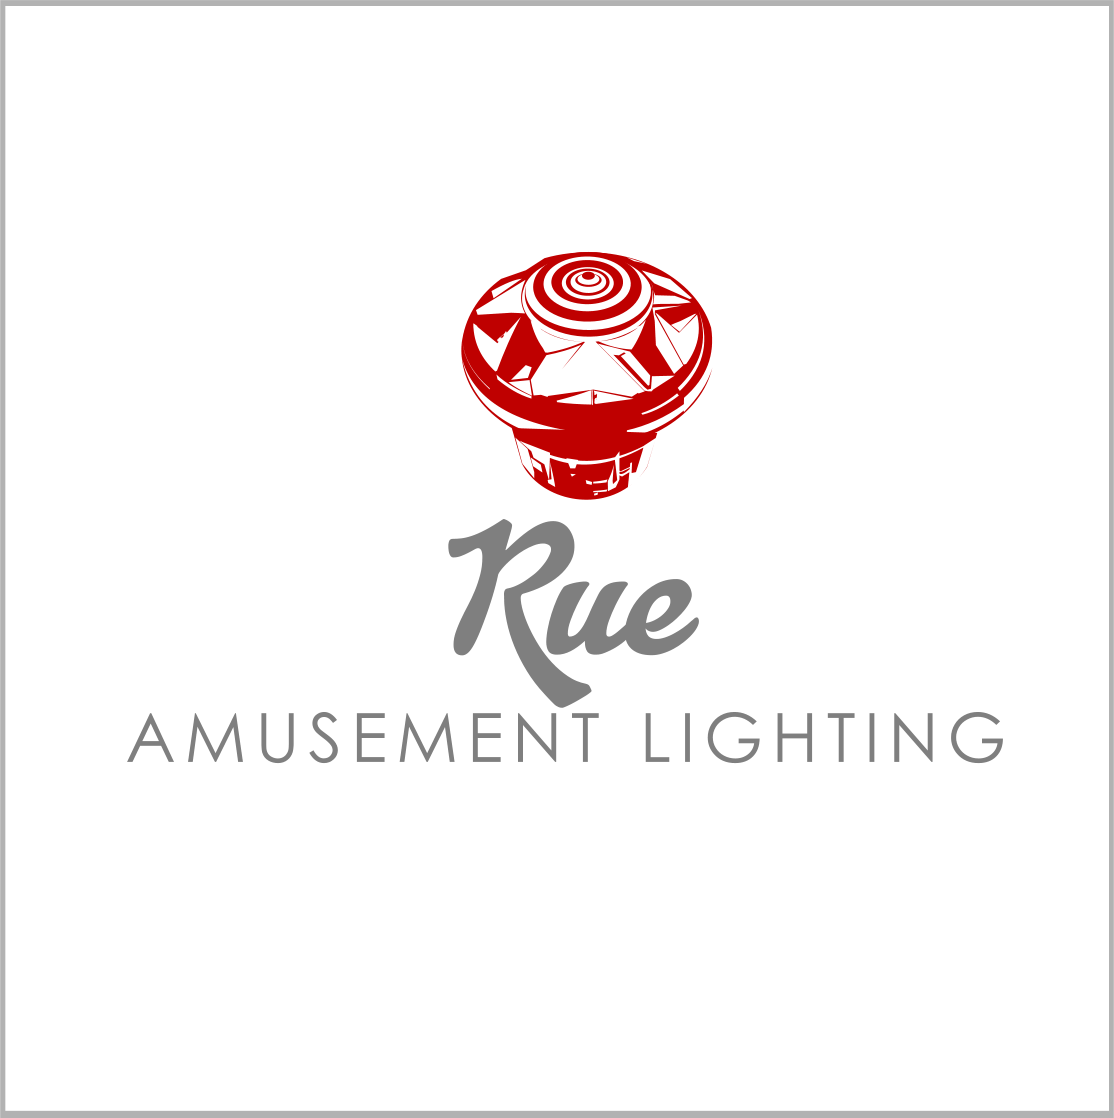 Rue Amusement Lighting